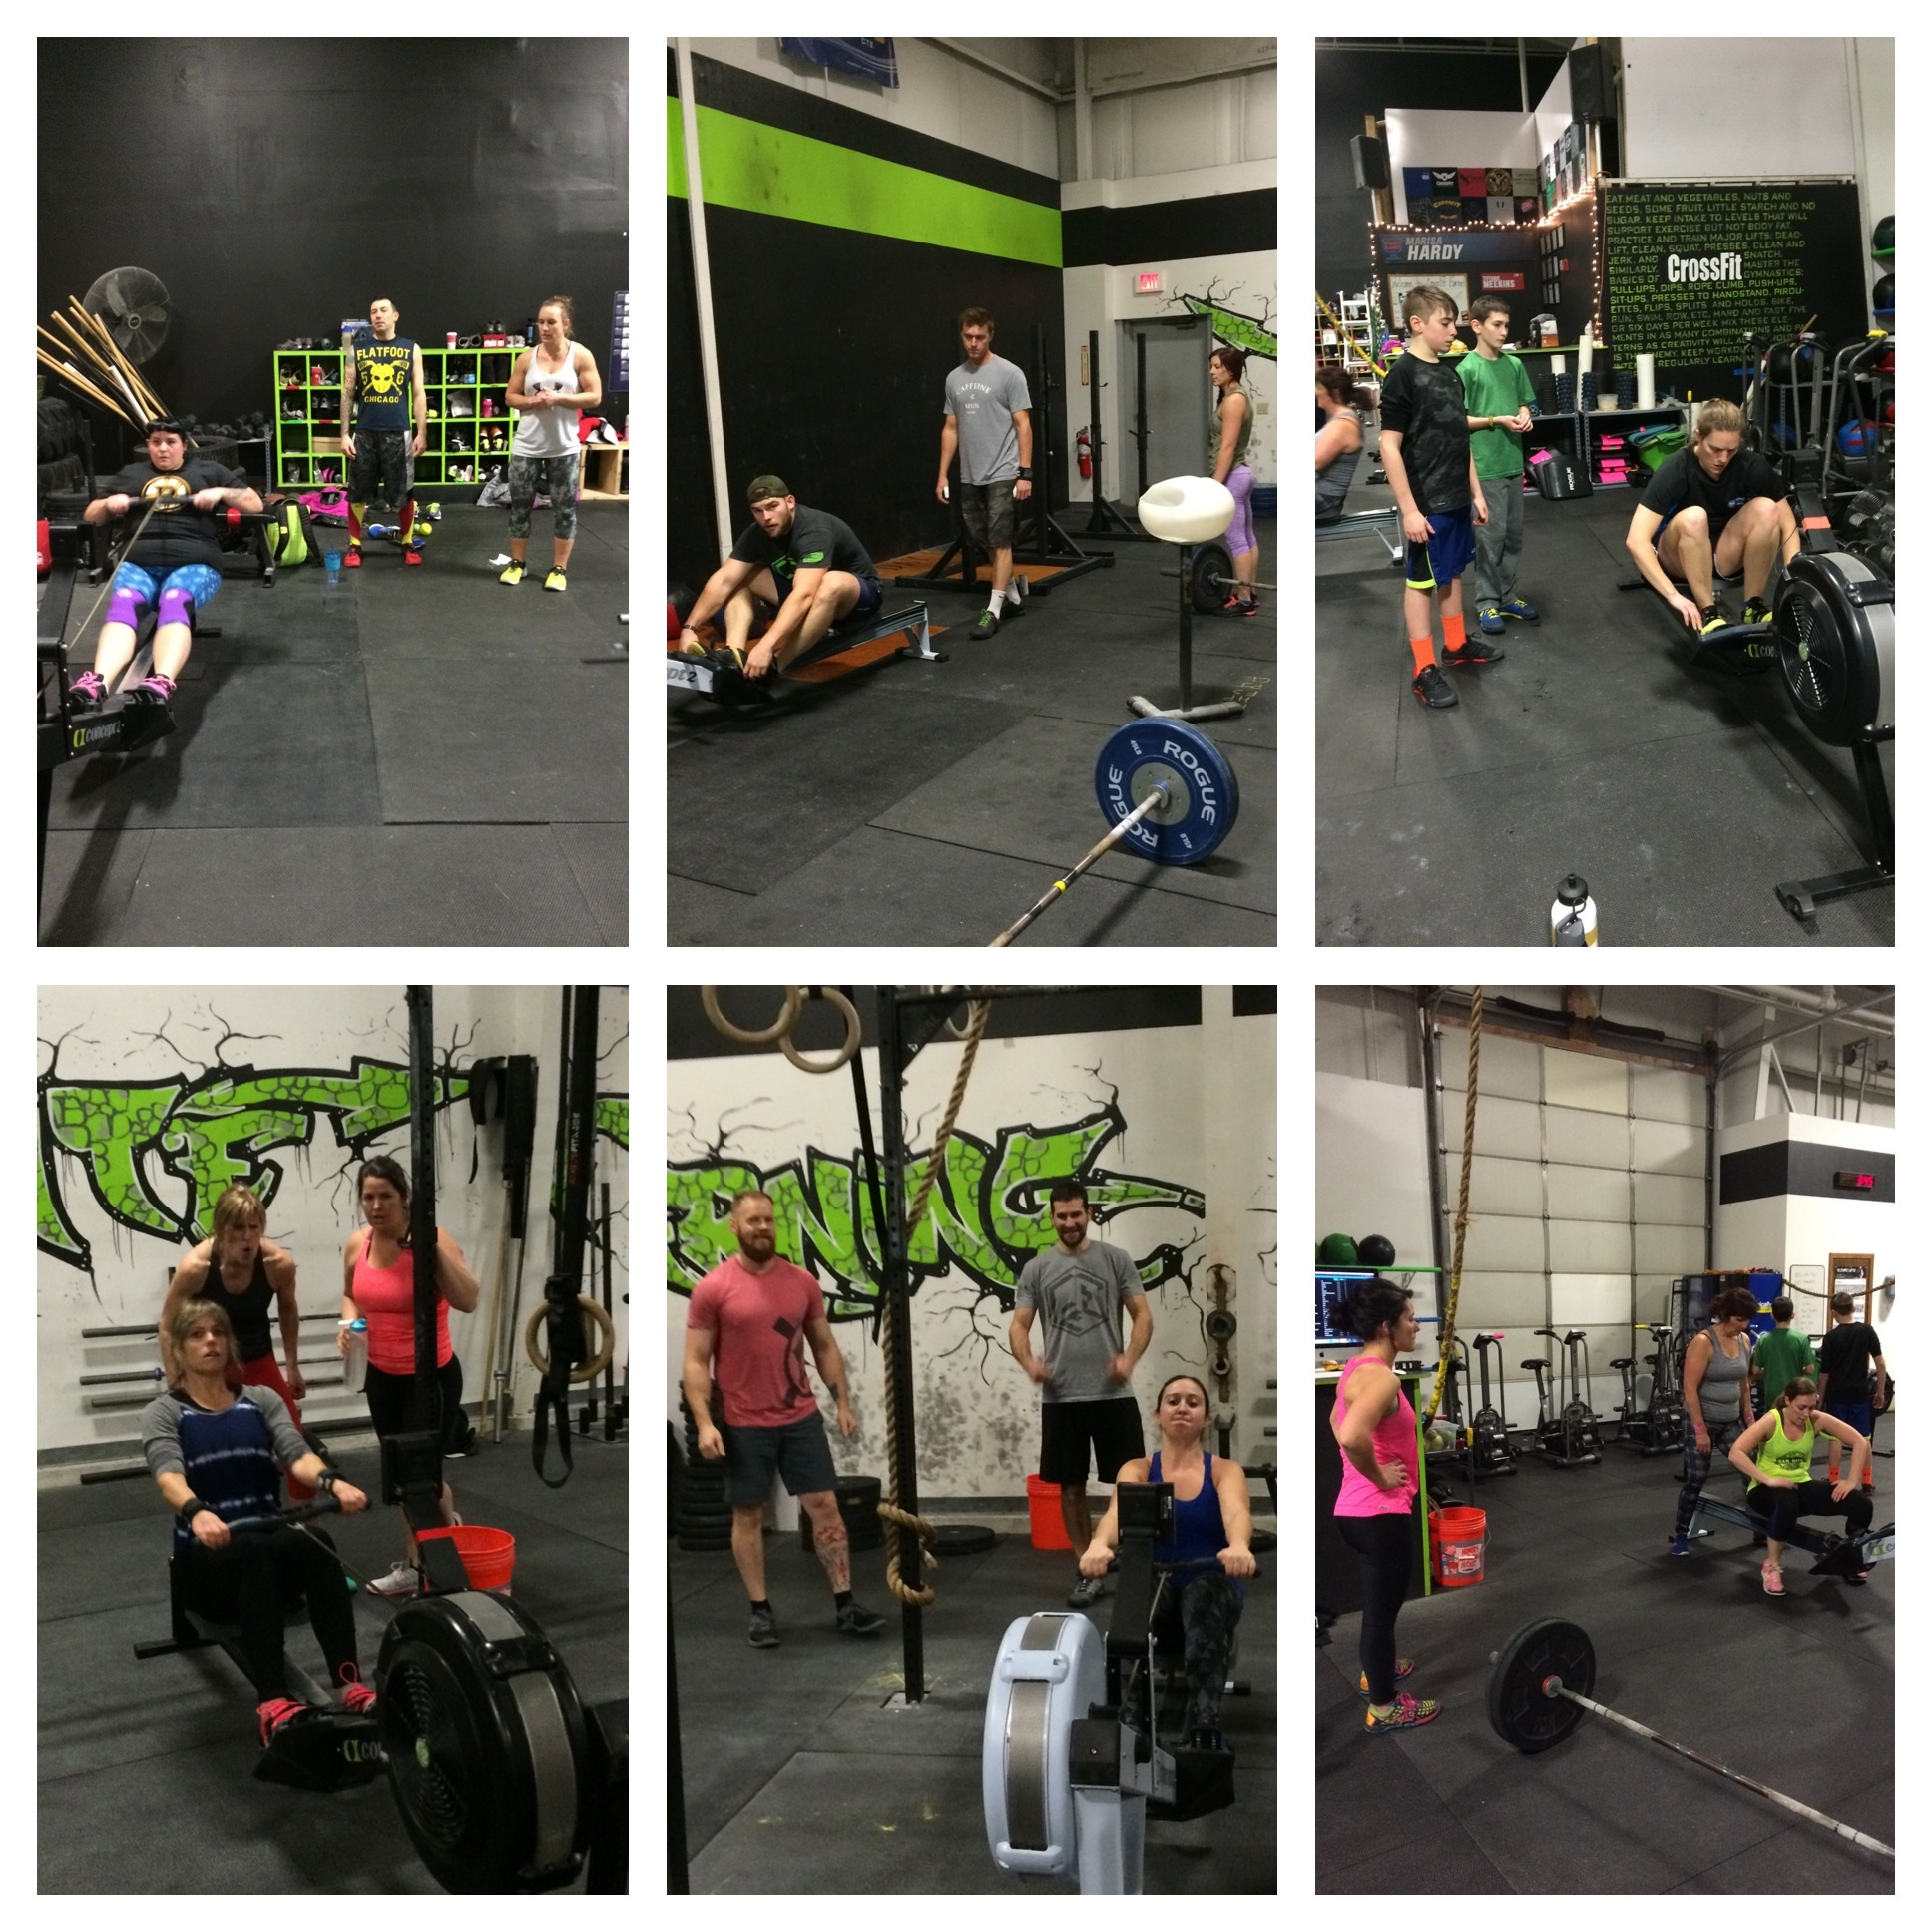 Last workout of 2015 and these teams rocked it!